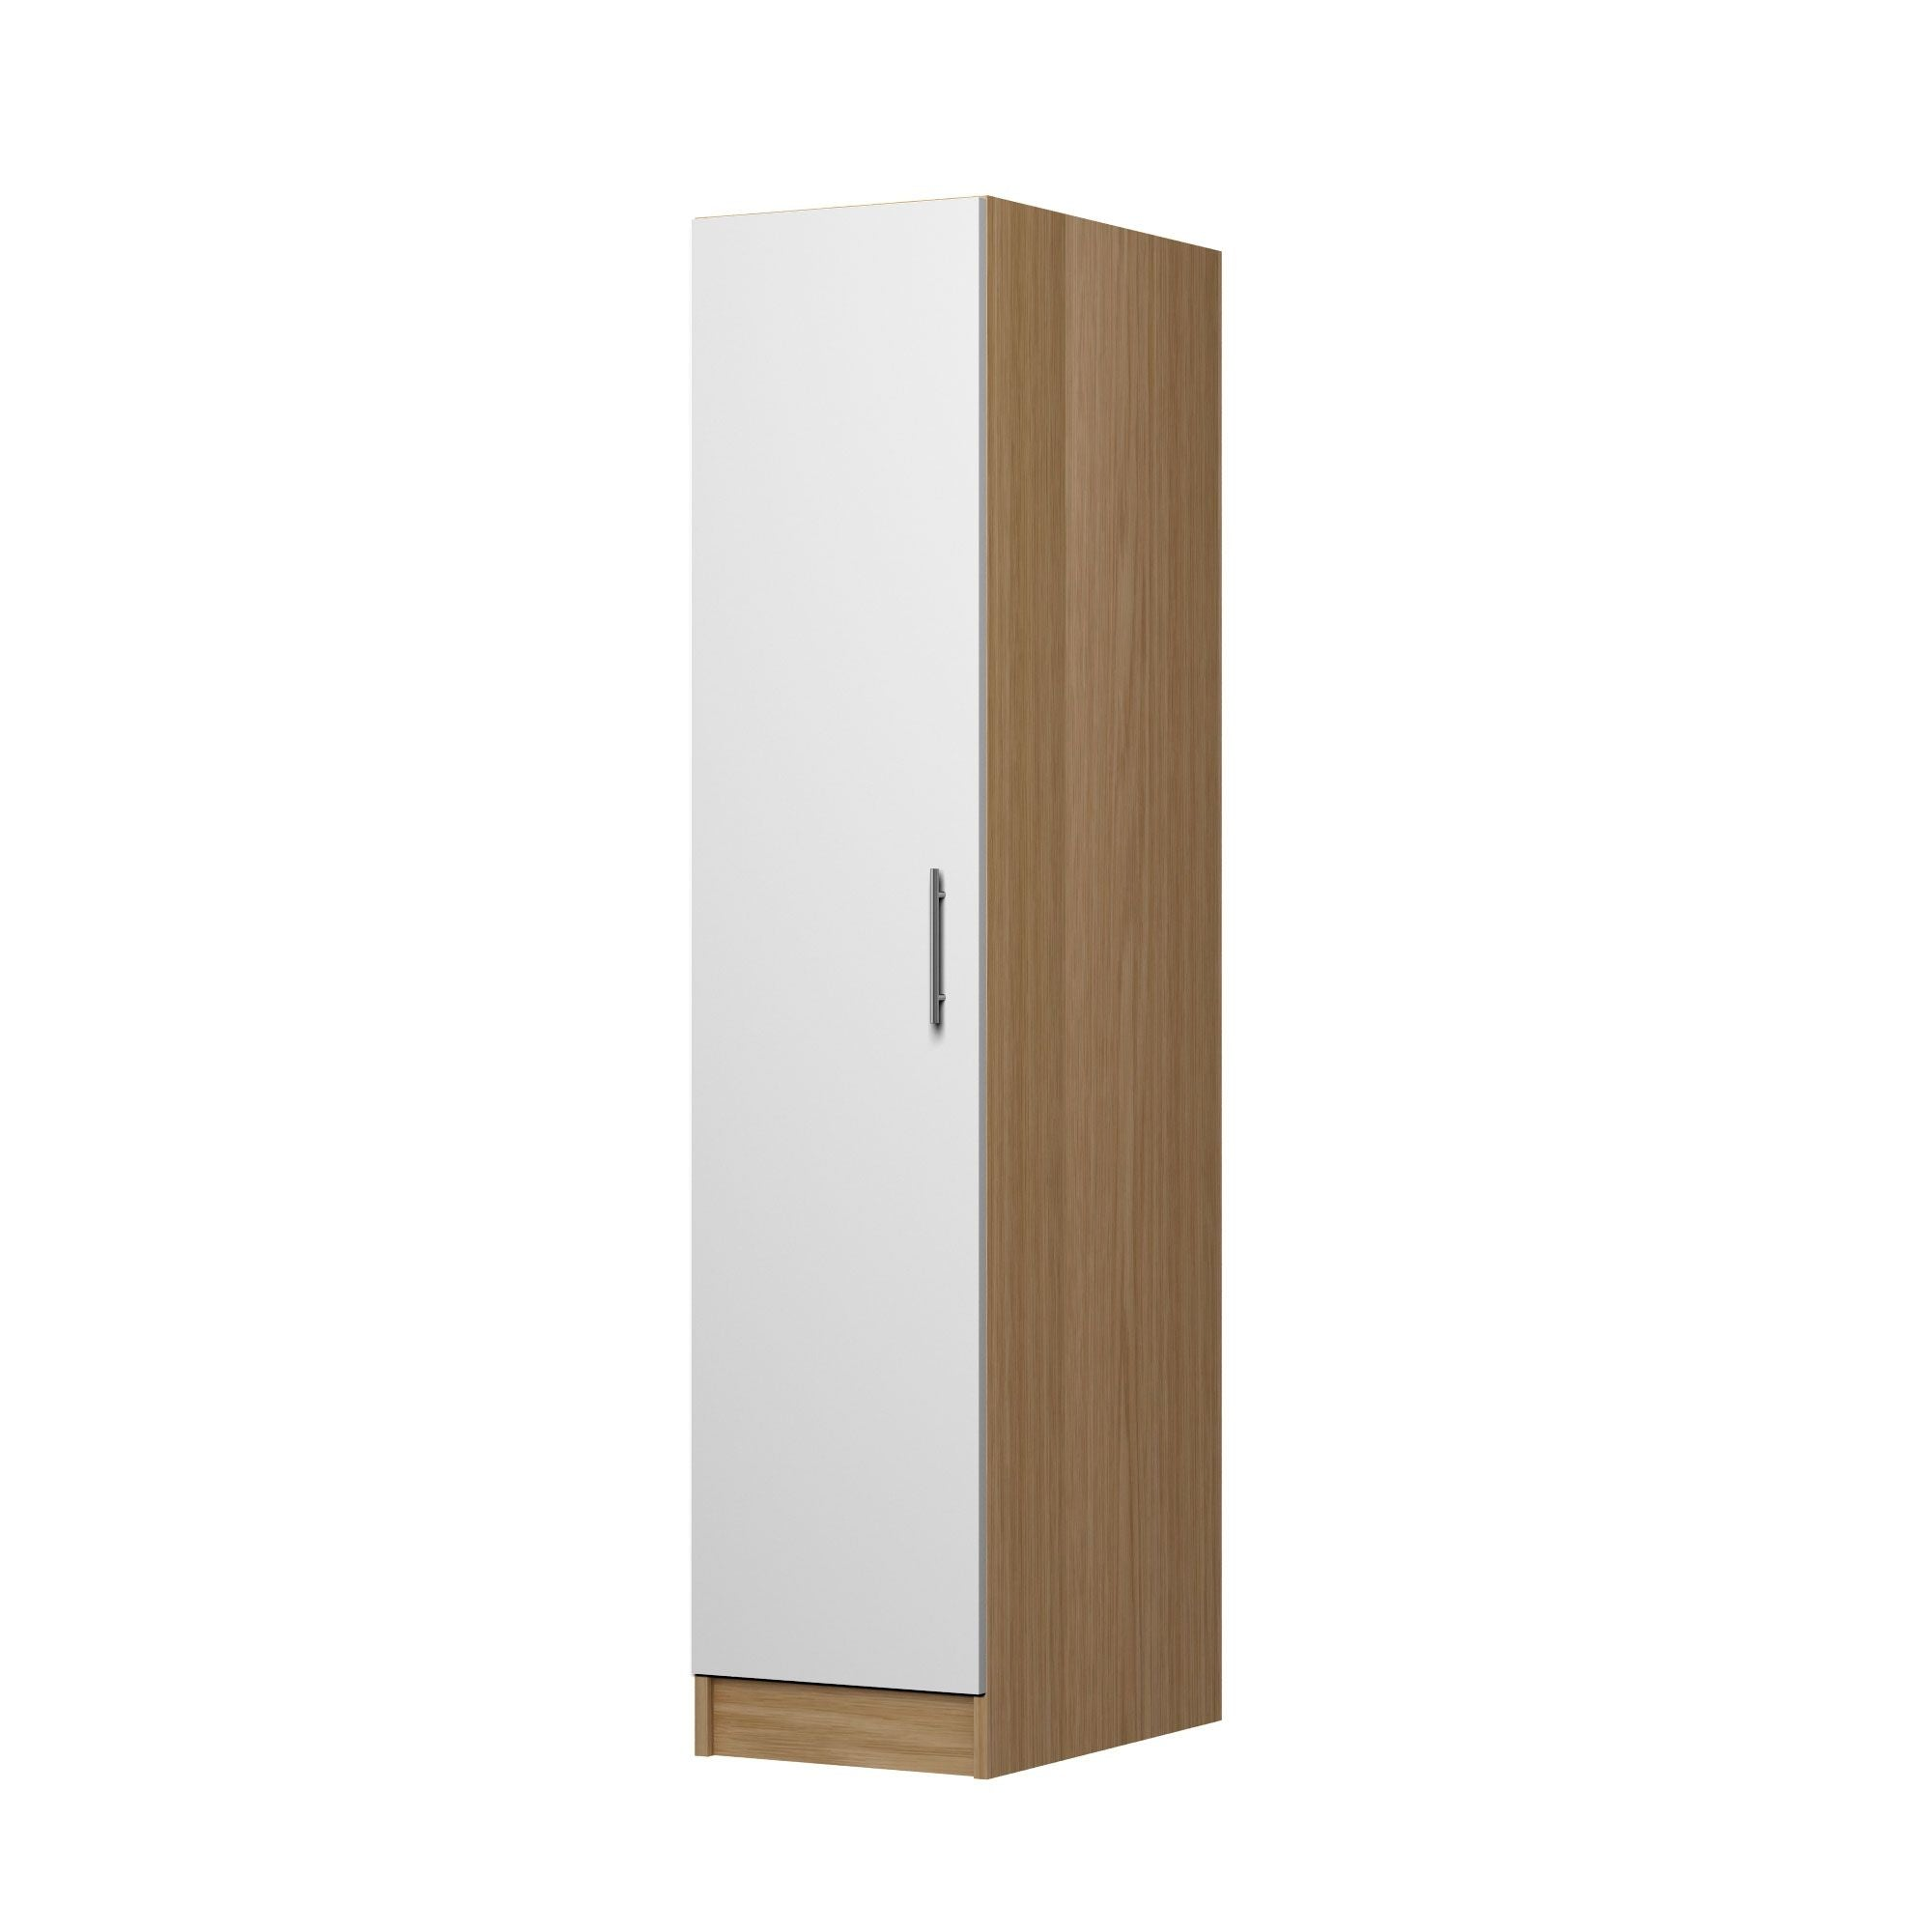 1 Door Wardrobe - Double Hanging